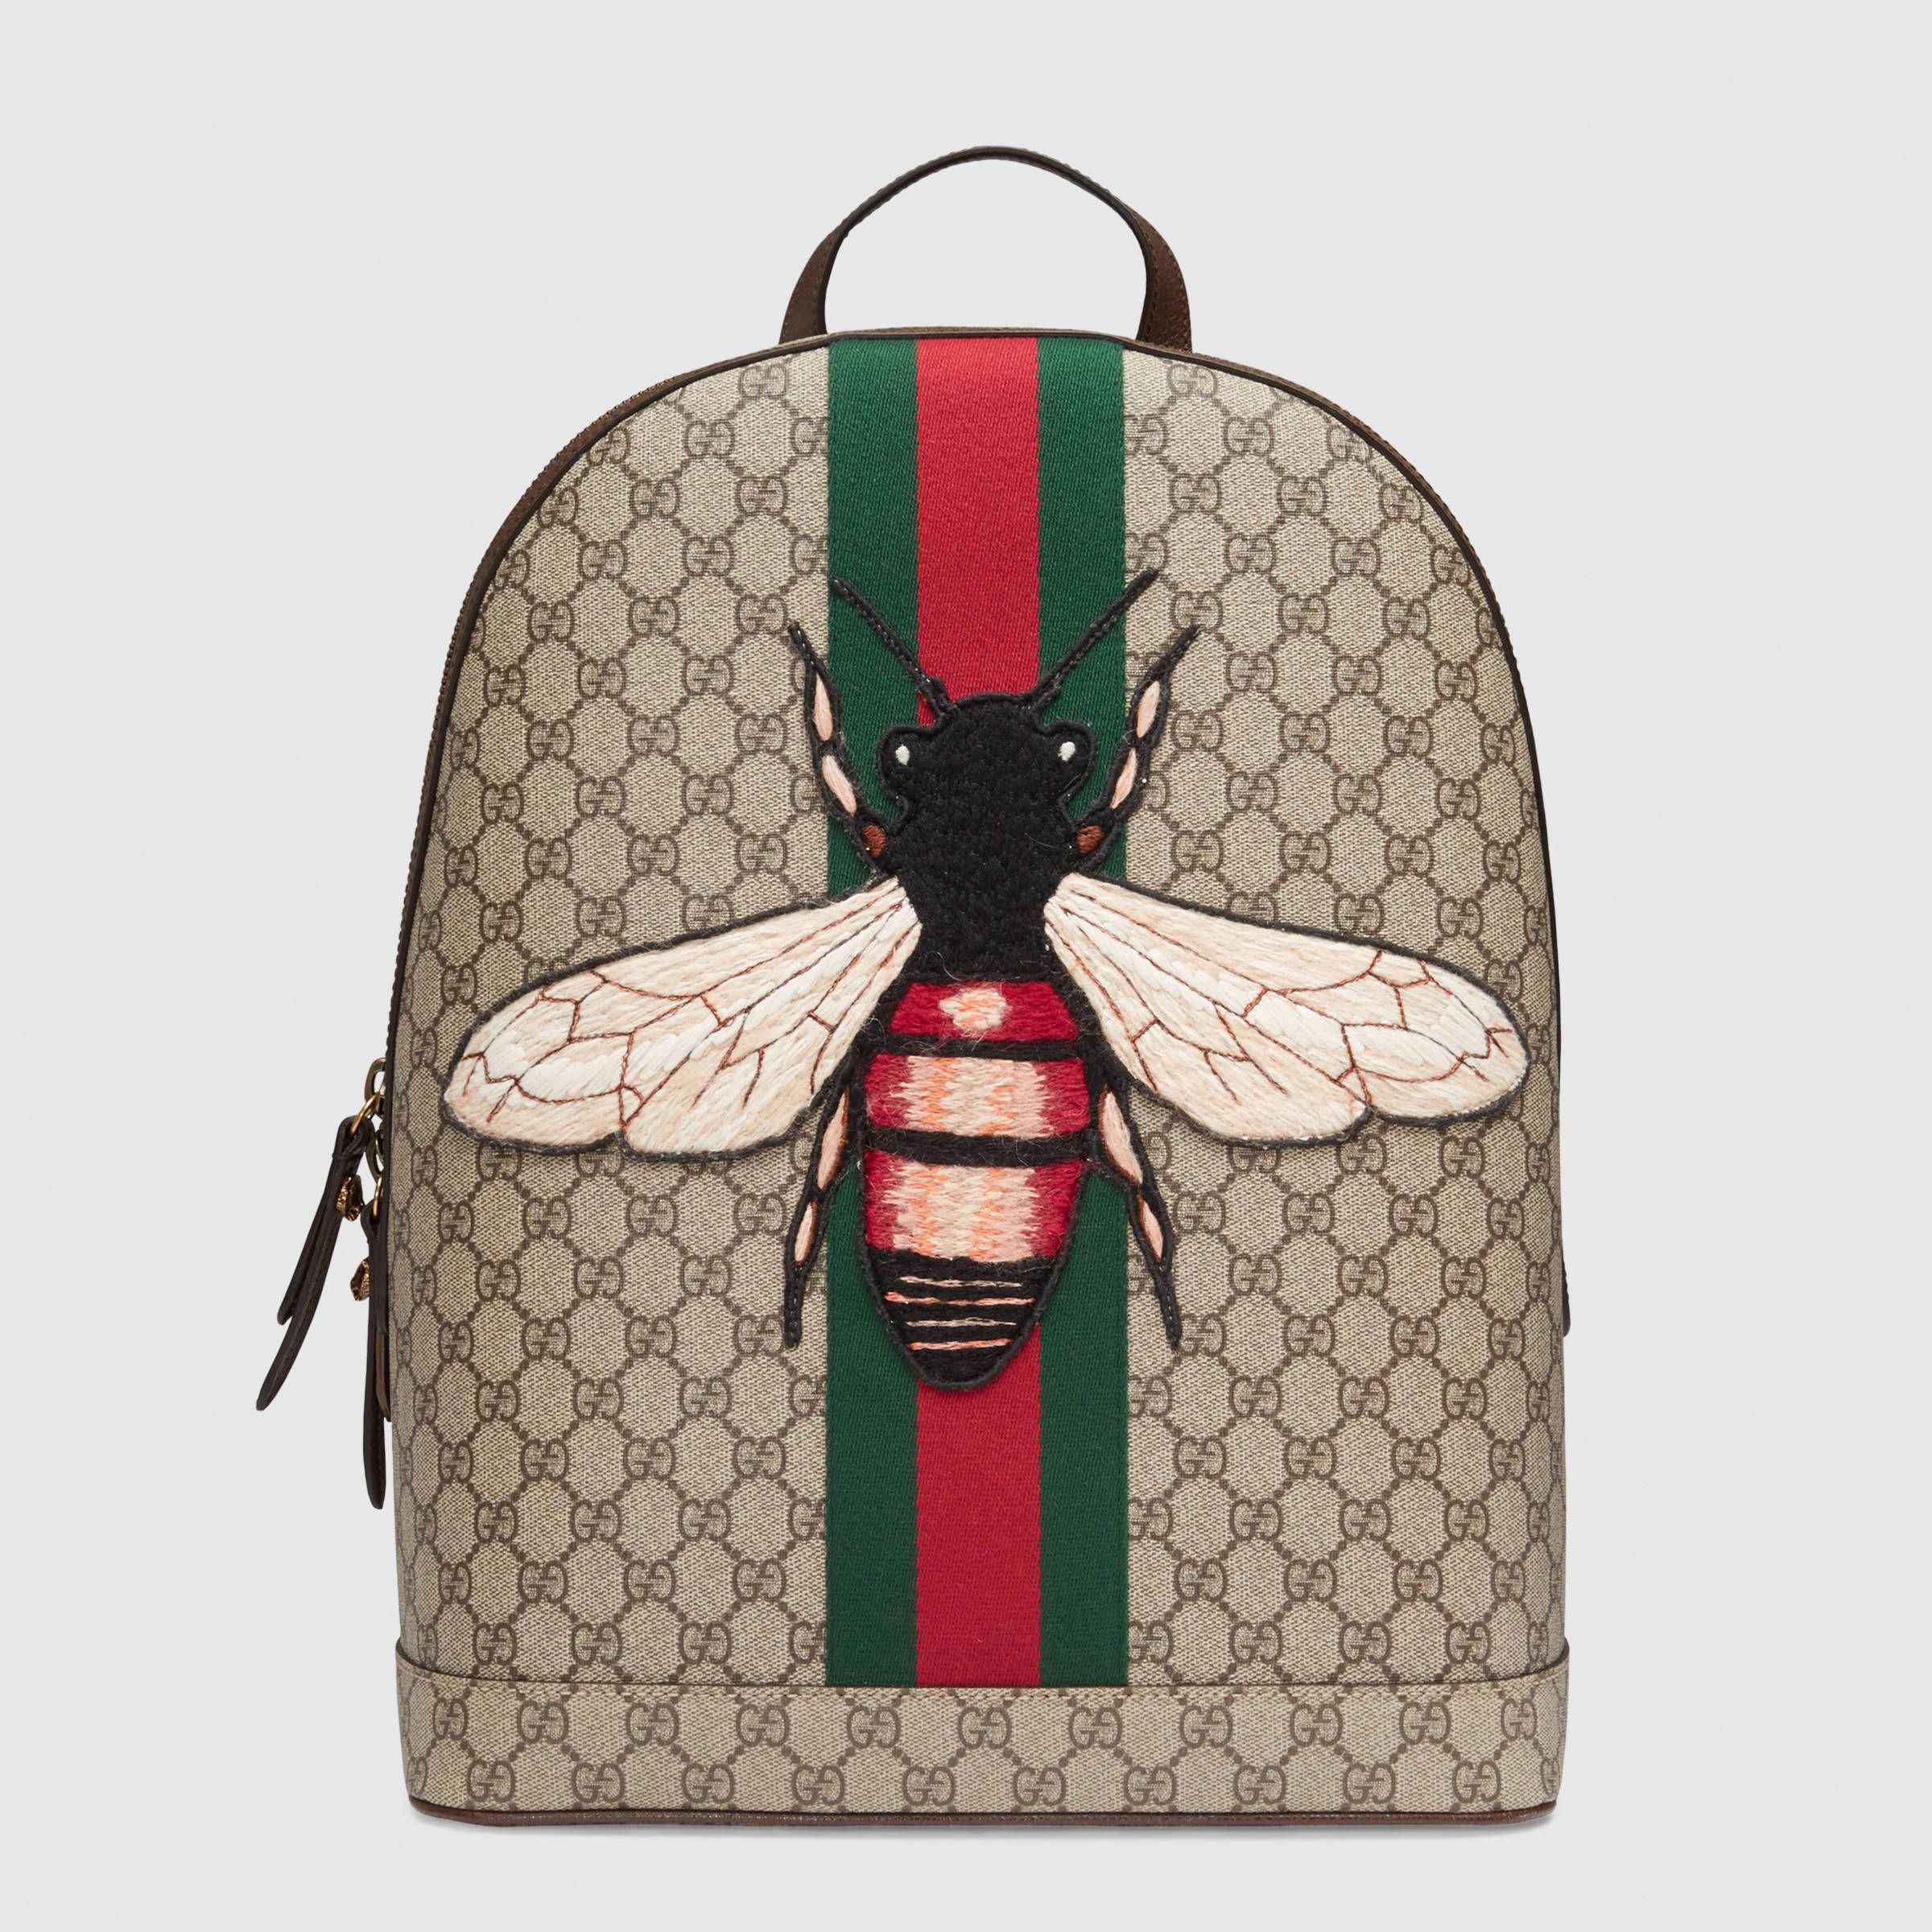 350c70a217ef Gucci. Web Animalier backpack with bee - 442892K2LZT8968 #Guccihandbags